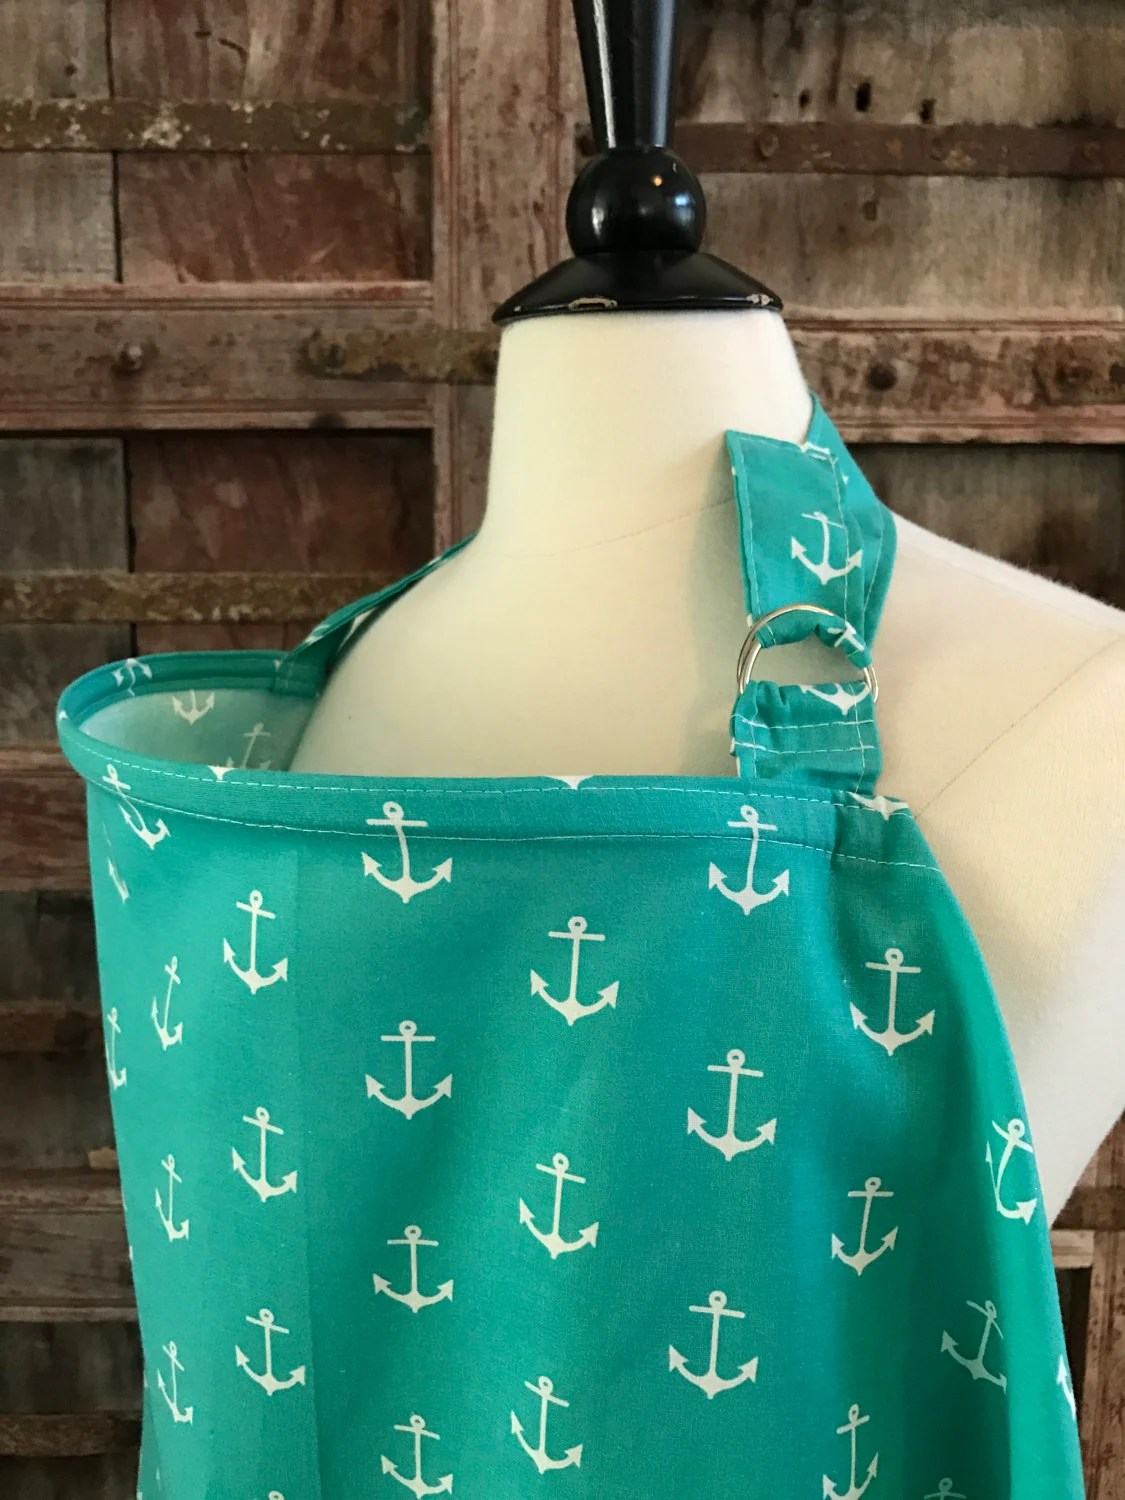 Nursing CoverTeal ChevronFree Shipping When Purchased With A